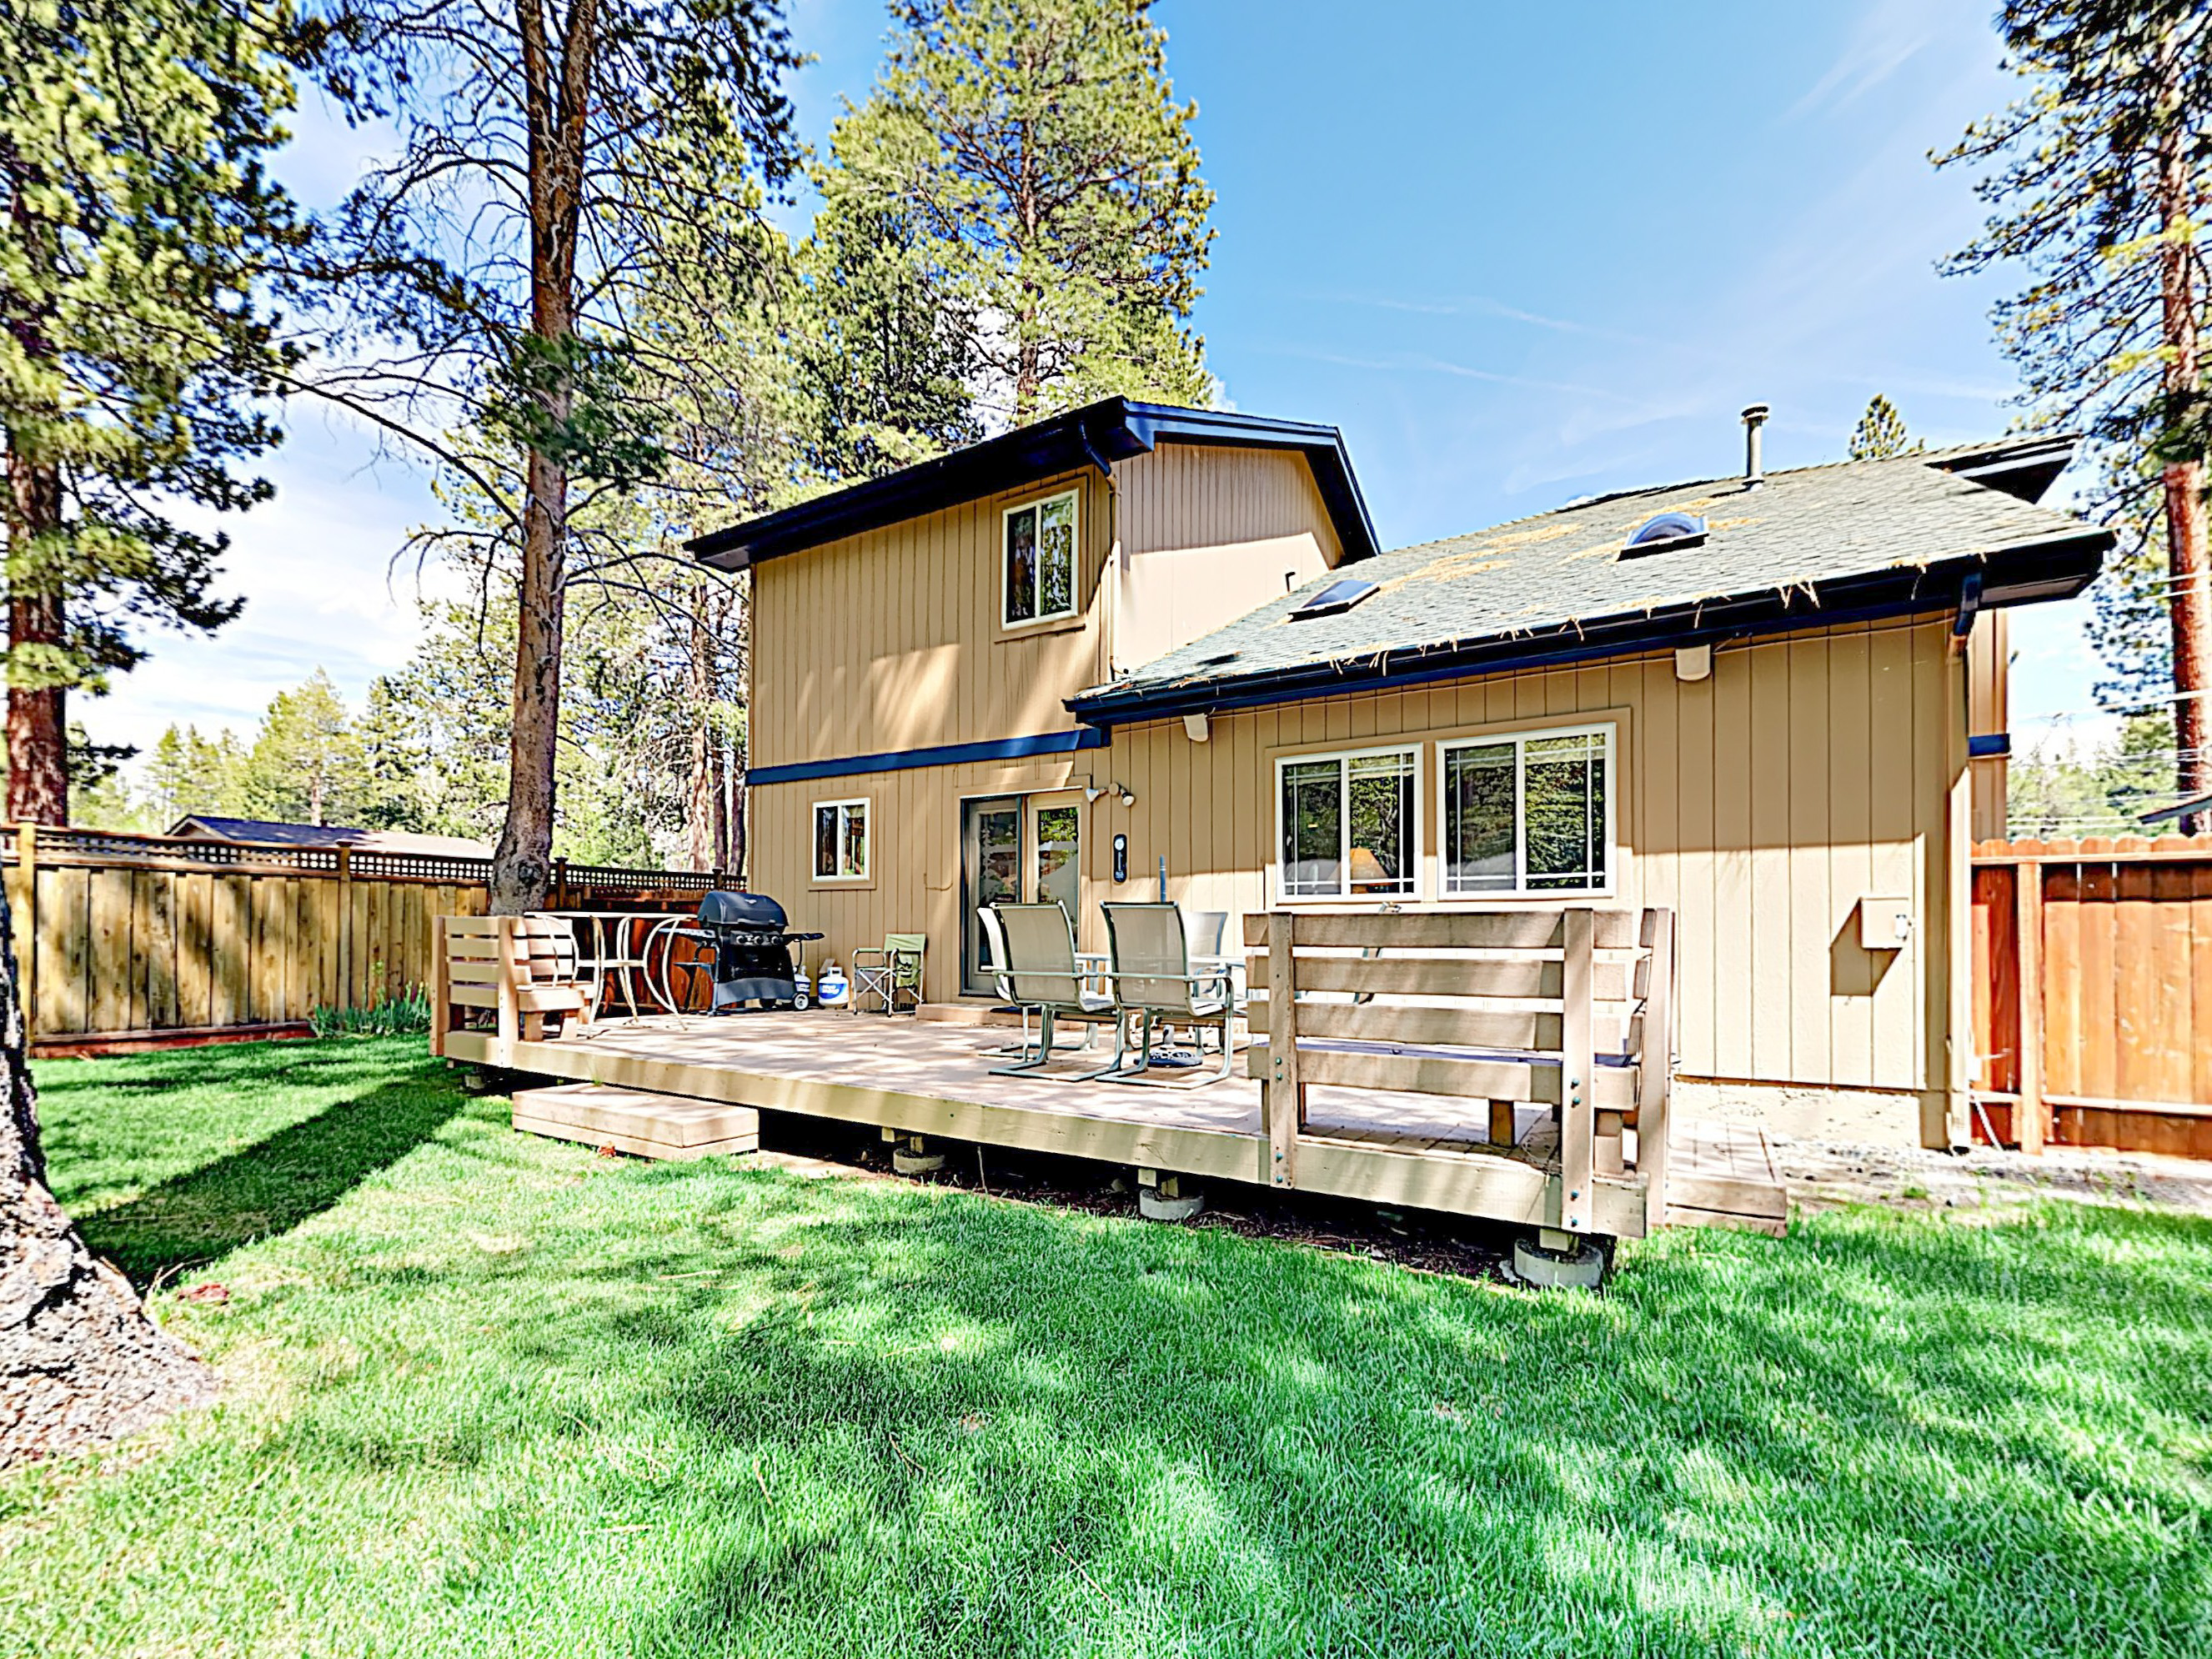 South Lake Tahoe CA Vacation Rental With TurnKey, you